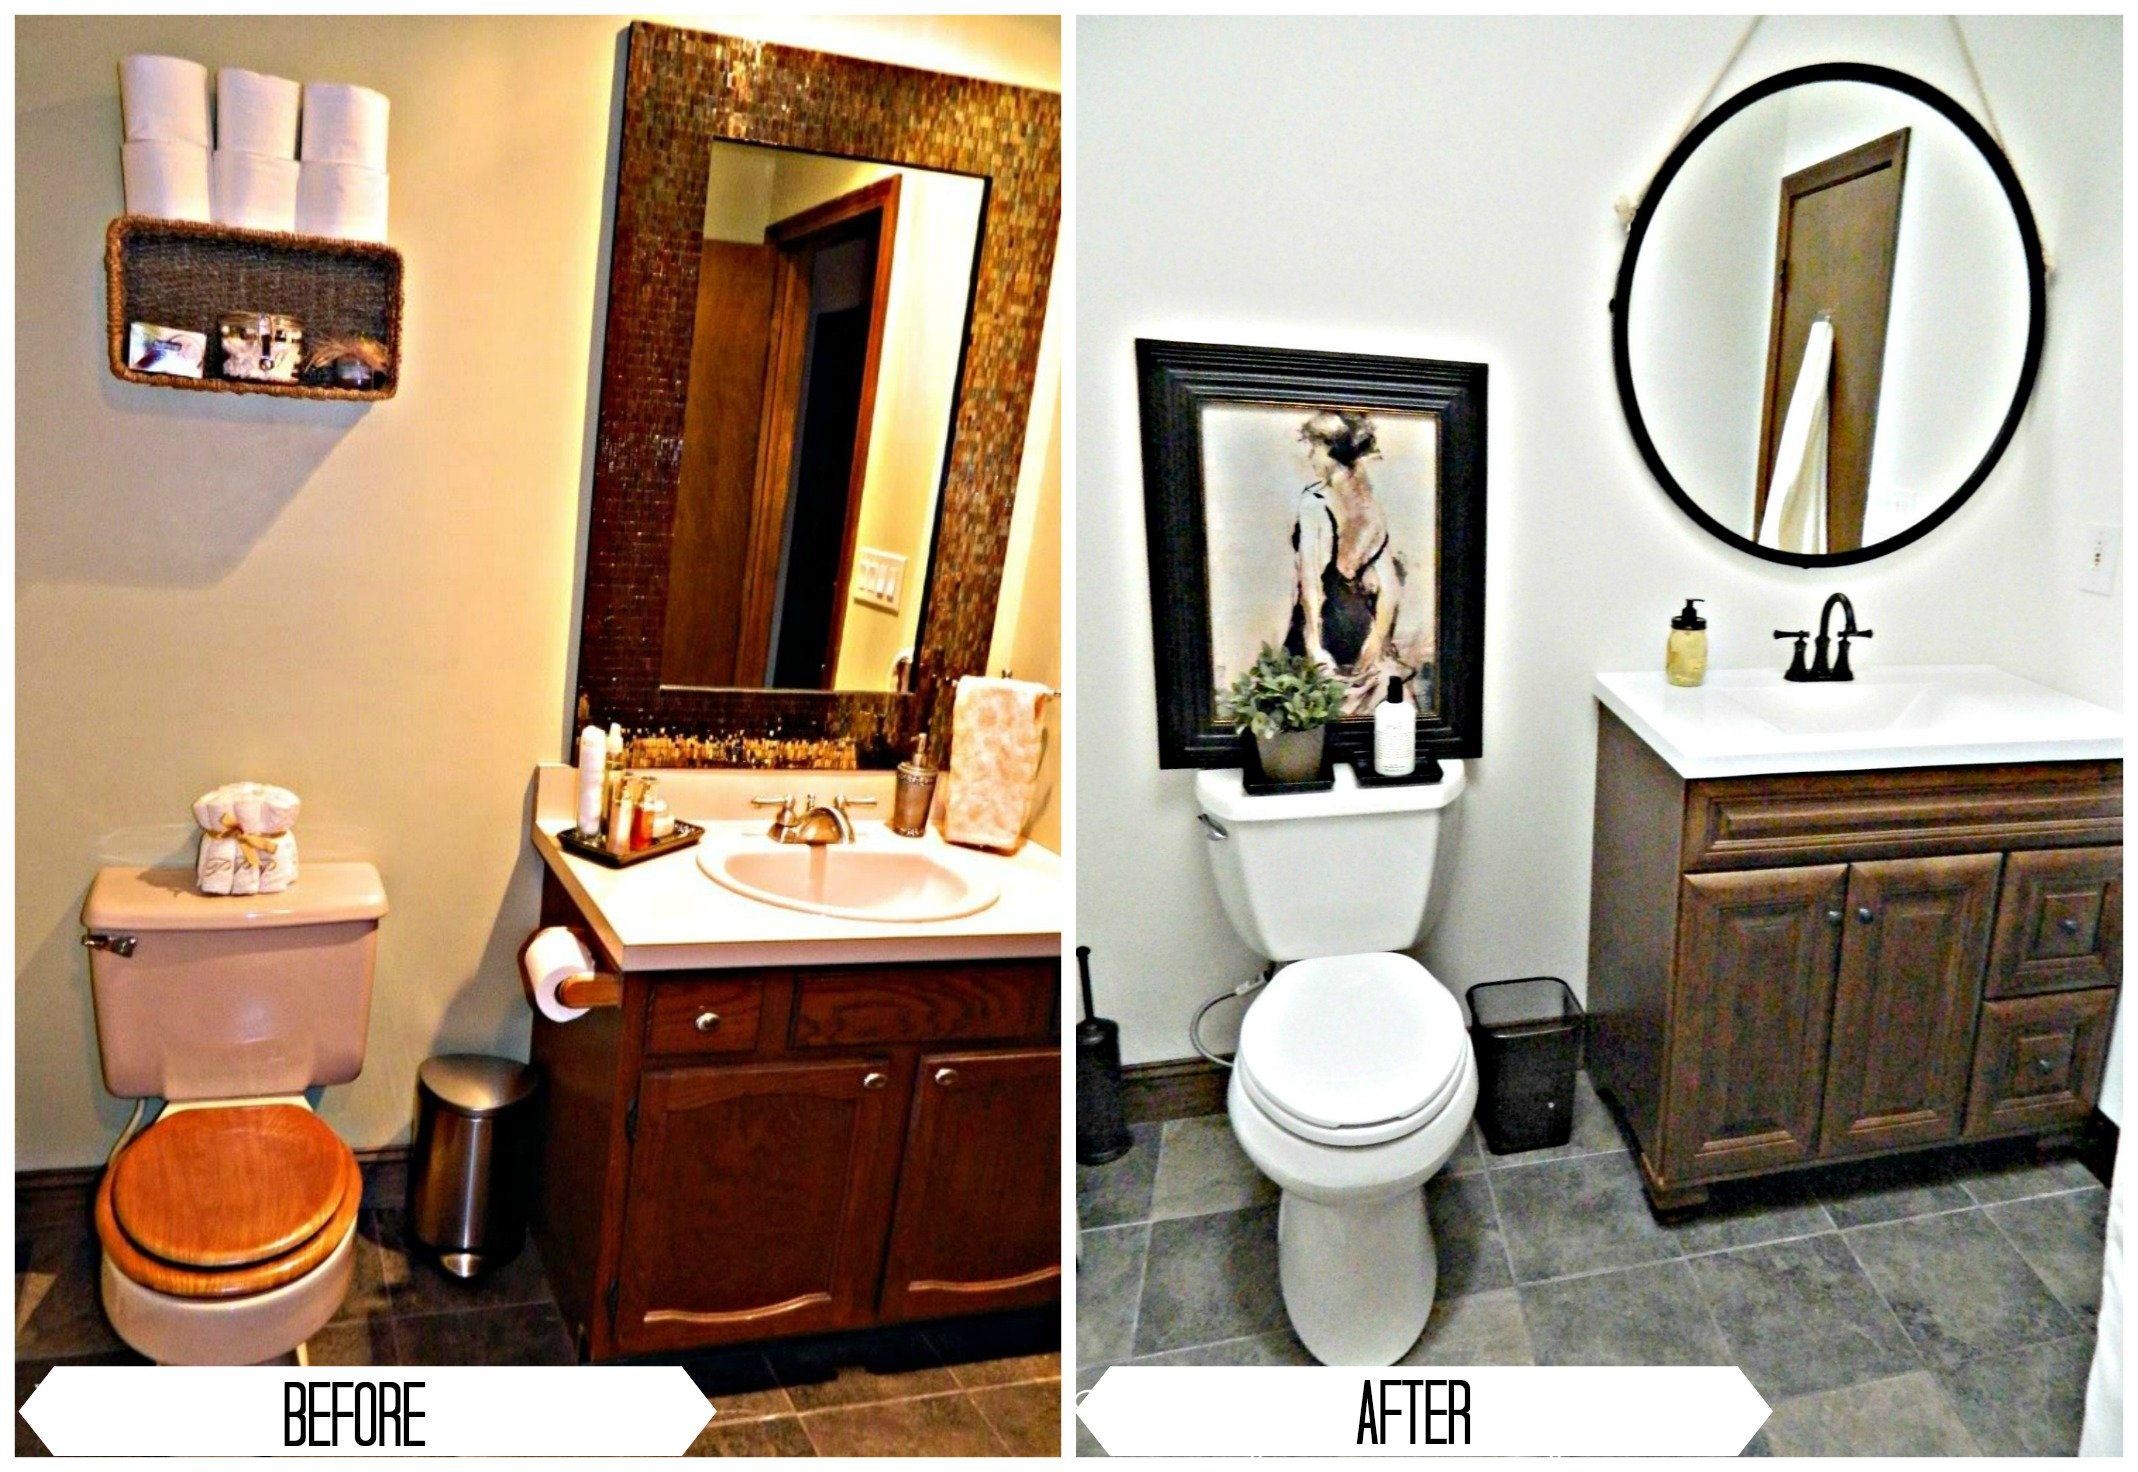 Before And After Bathroom Renovation At FindingSilverLinings.net